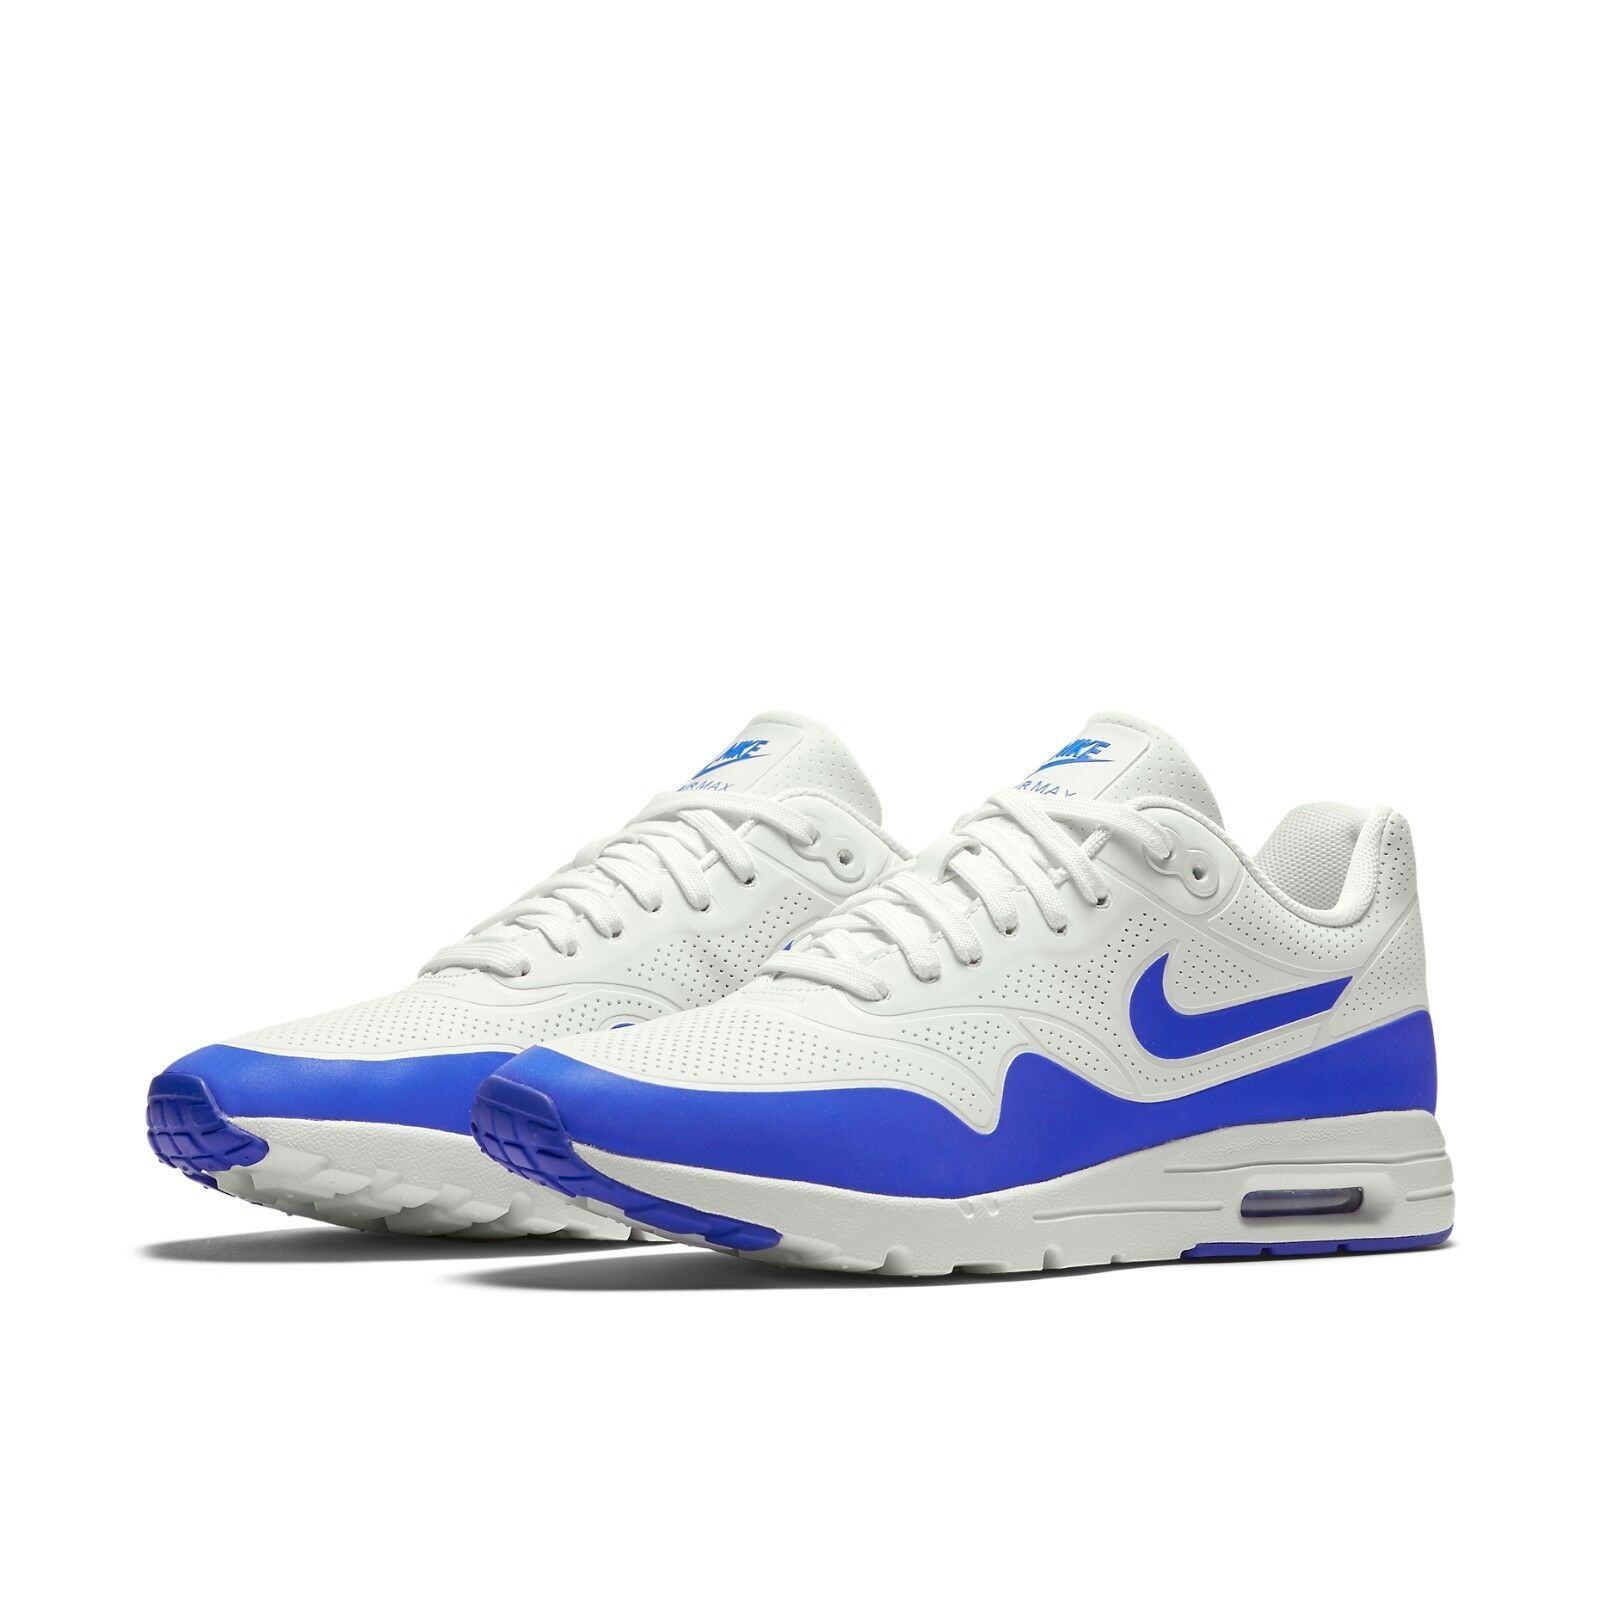 Women's Nike Air Max 1 Ultra Moire Sneaker Shoes NEW Summit White / Racer Blue